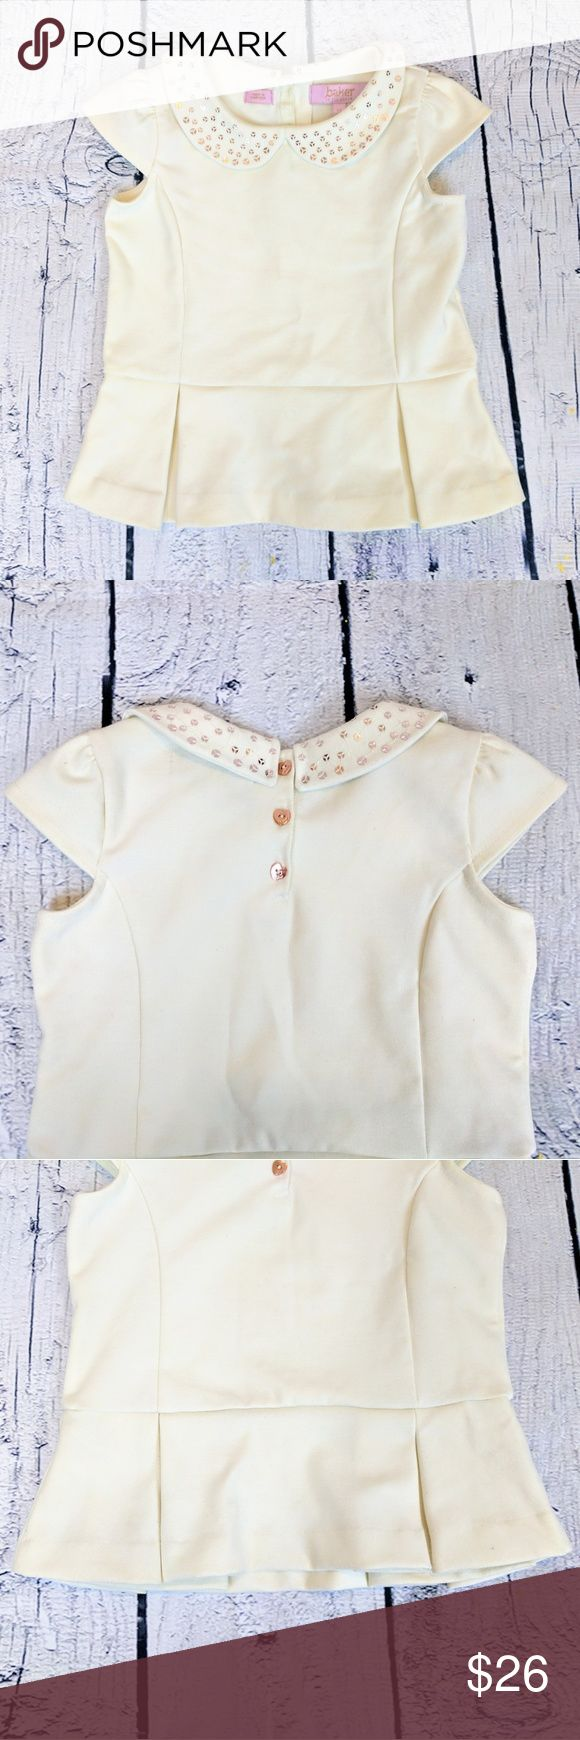 BAKER BY TED BAKER   box pleat peplum top Pretty little box pleat peplum top with cap sleeves for girls from BAKER by Ted Baker. Rose gold heart shaped buttons on back, rose gold sequin detail around Peter pan collar. Size 4Y. Baker by Ted Baker Shirts & Tops Blouses